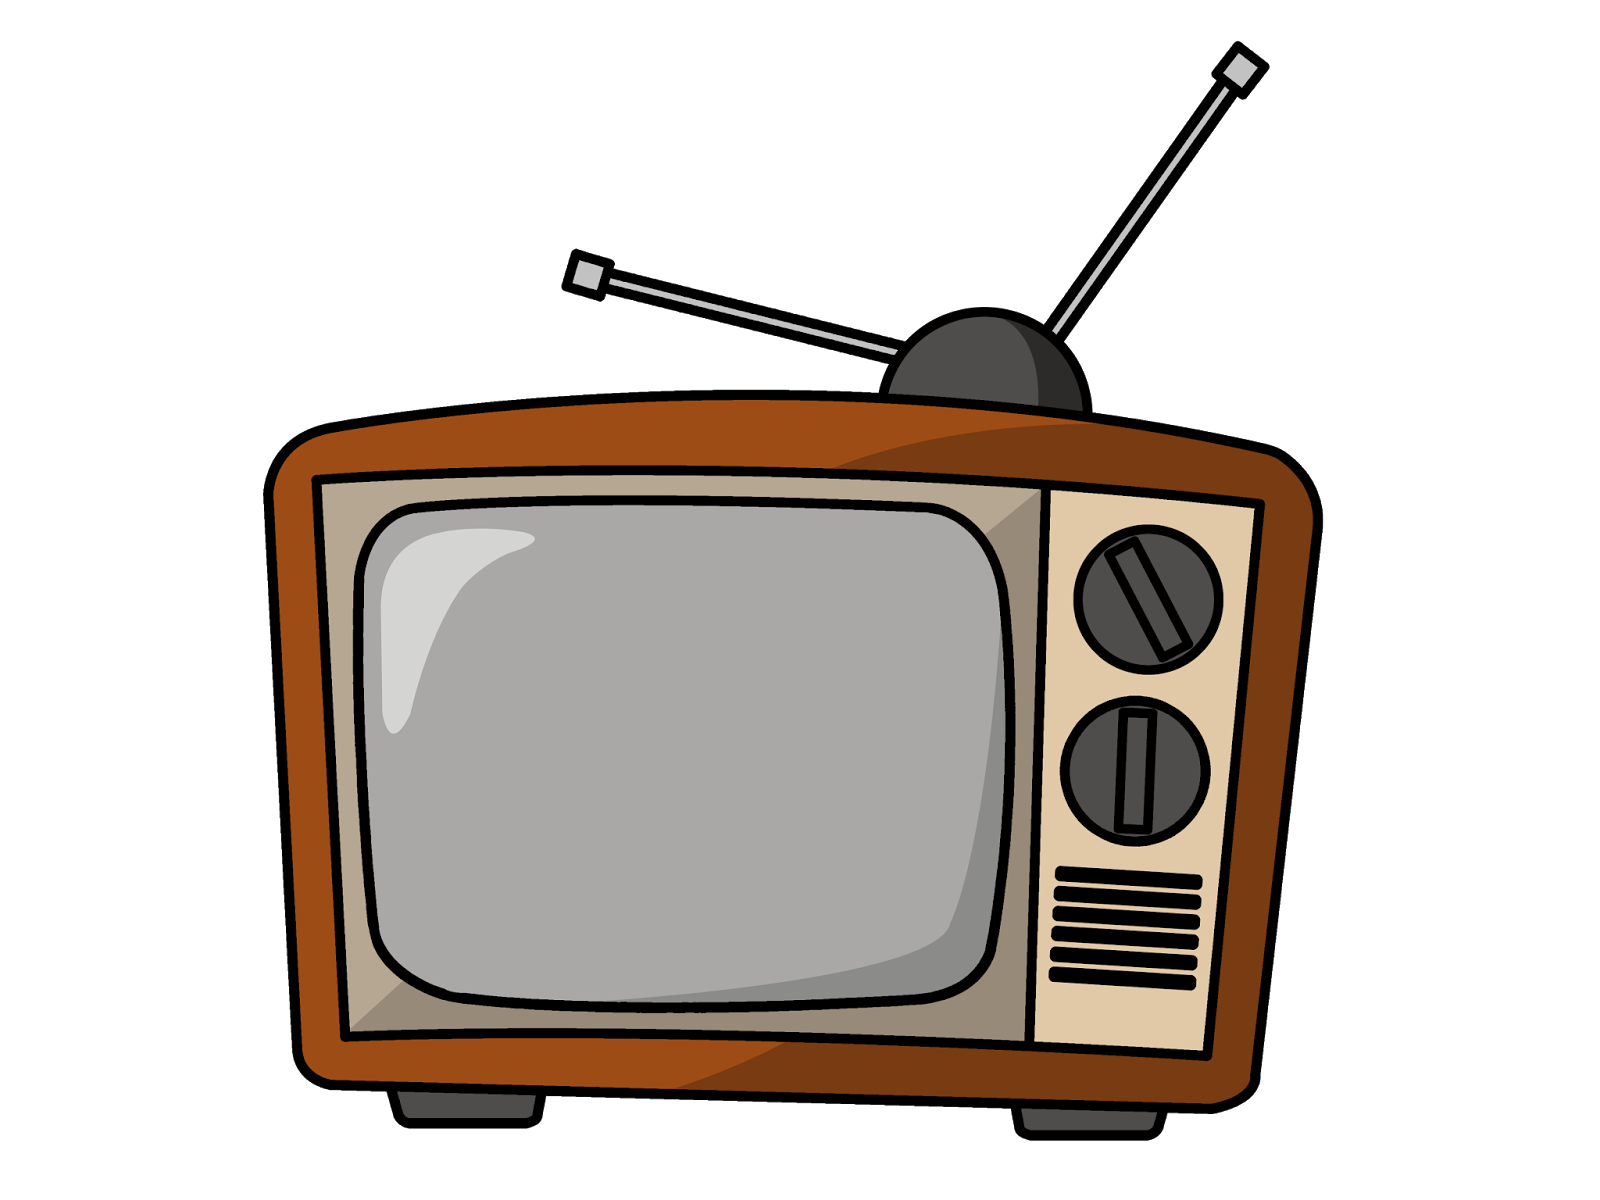 Television clipart tv show. Image png my singing